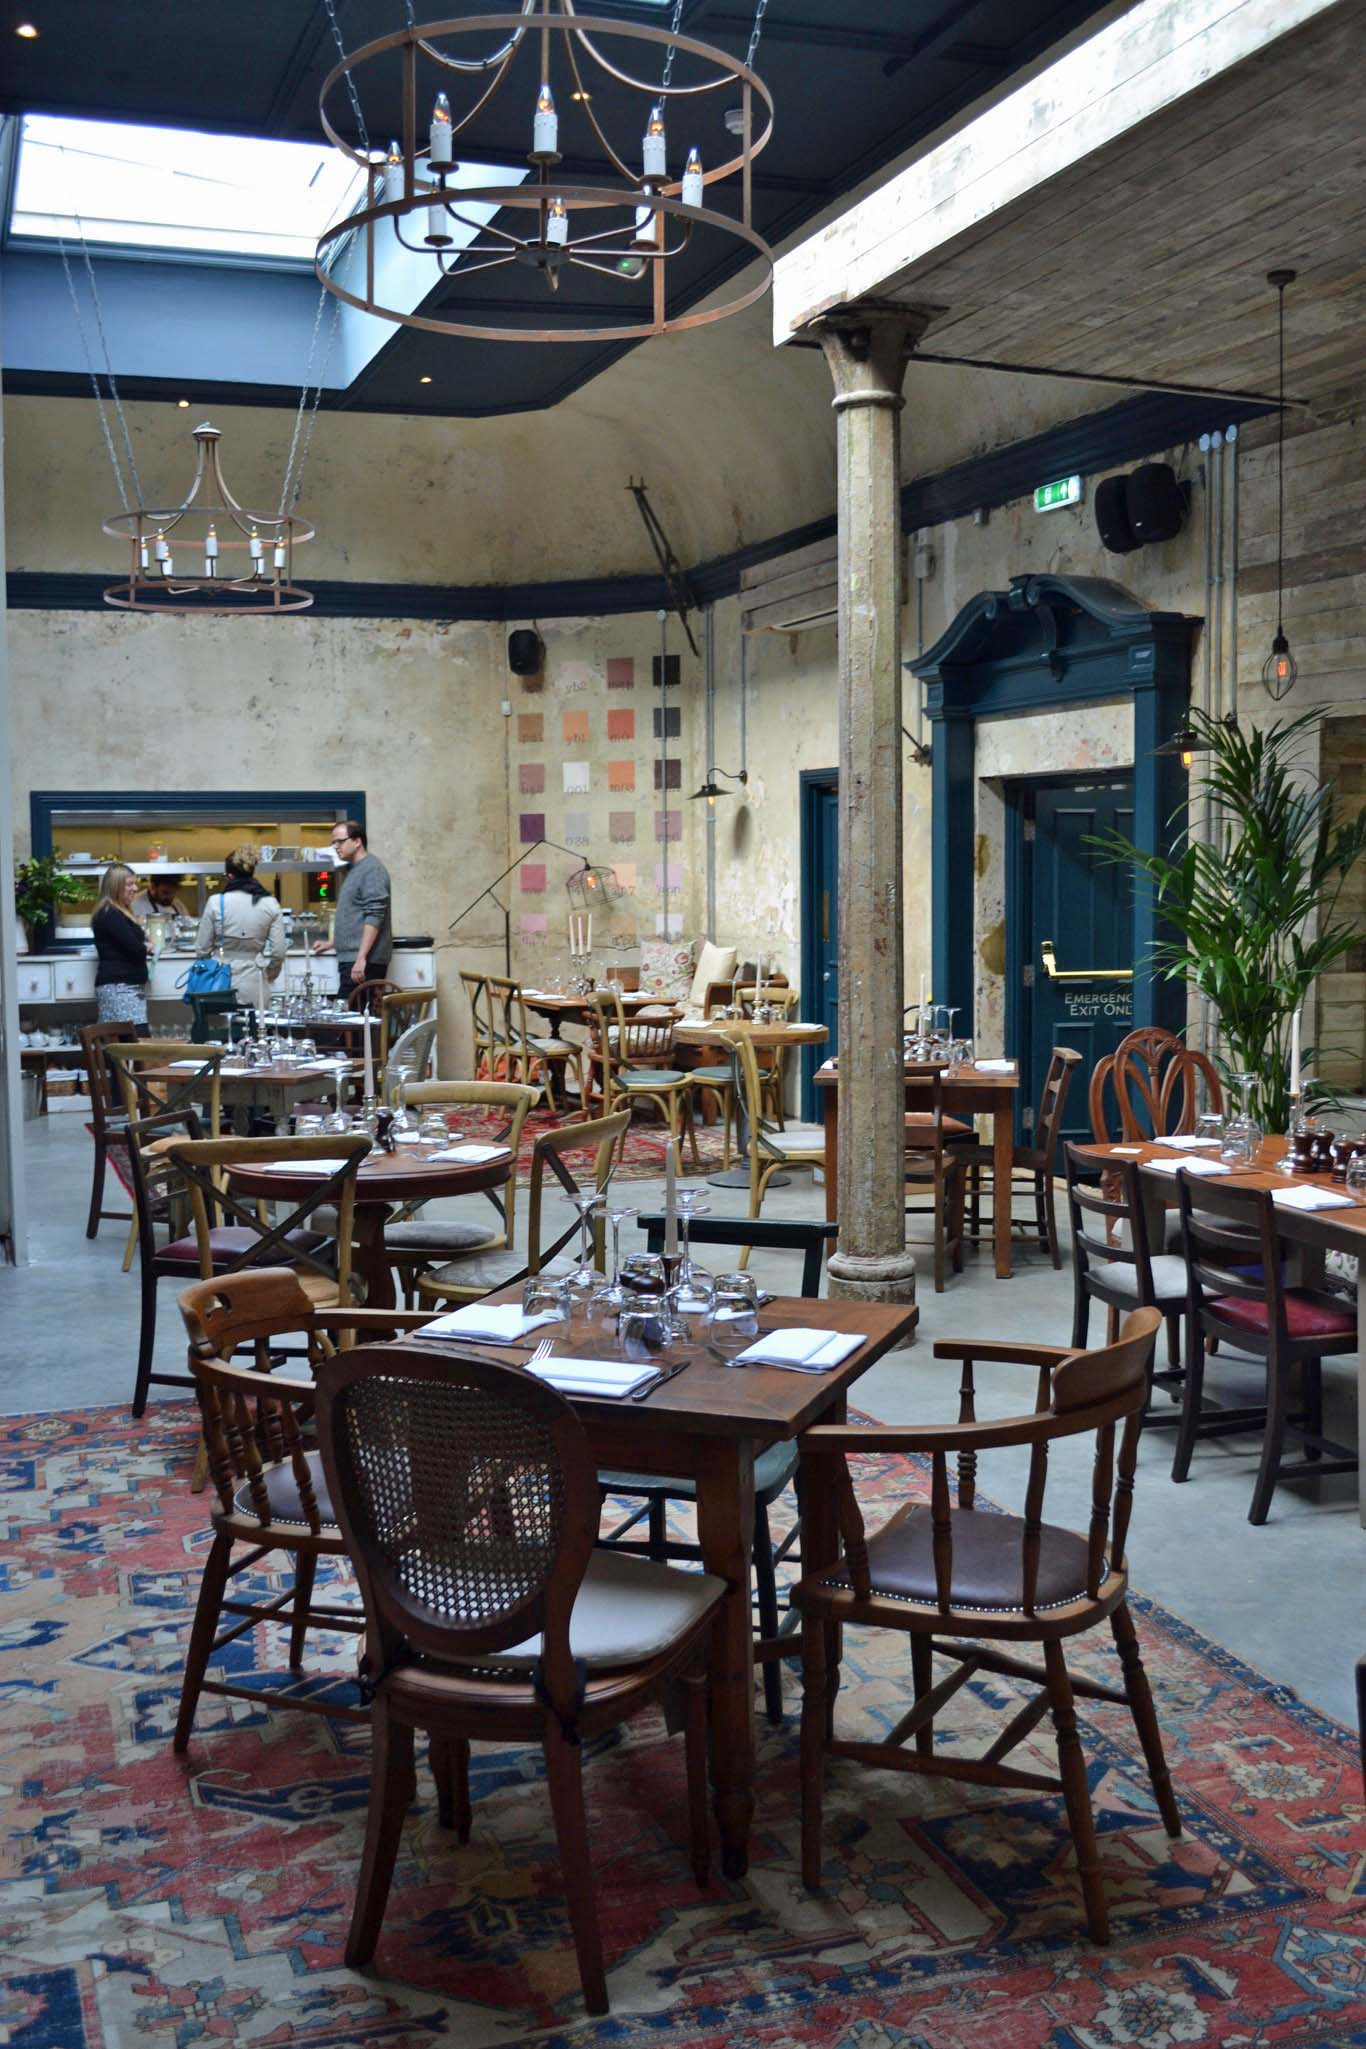 Unrecognisable: the dining room was once the gig venue. Photo: SE